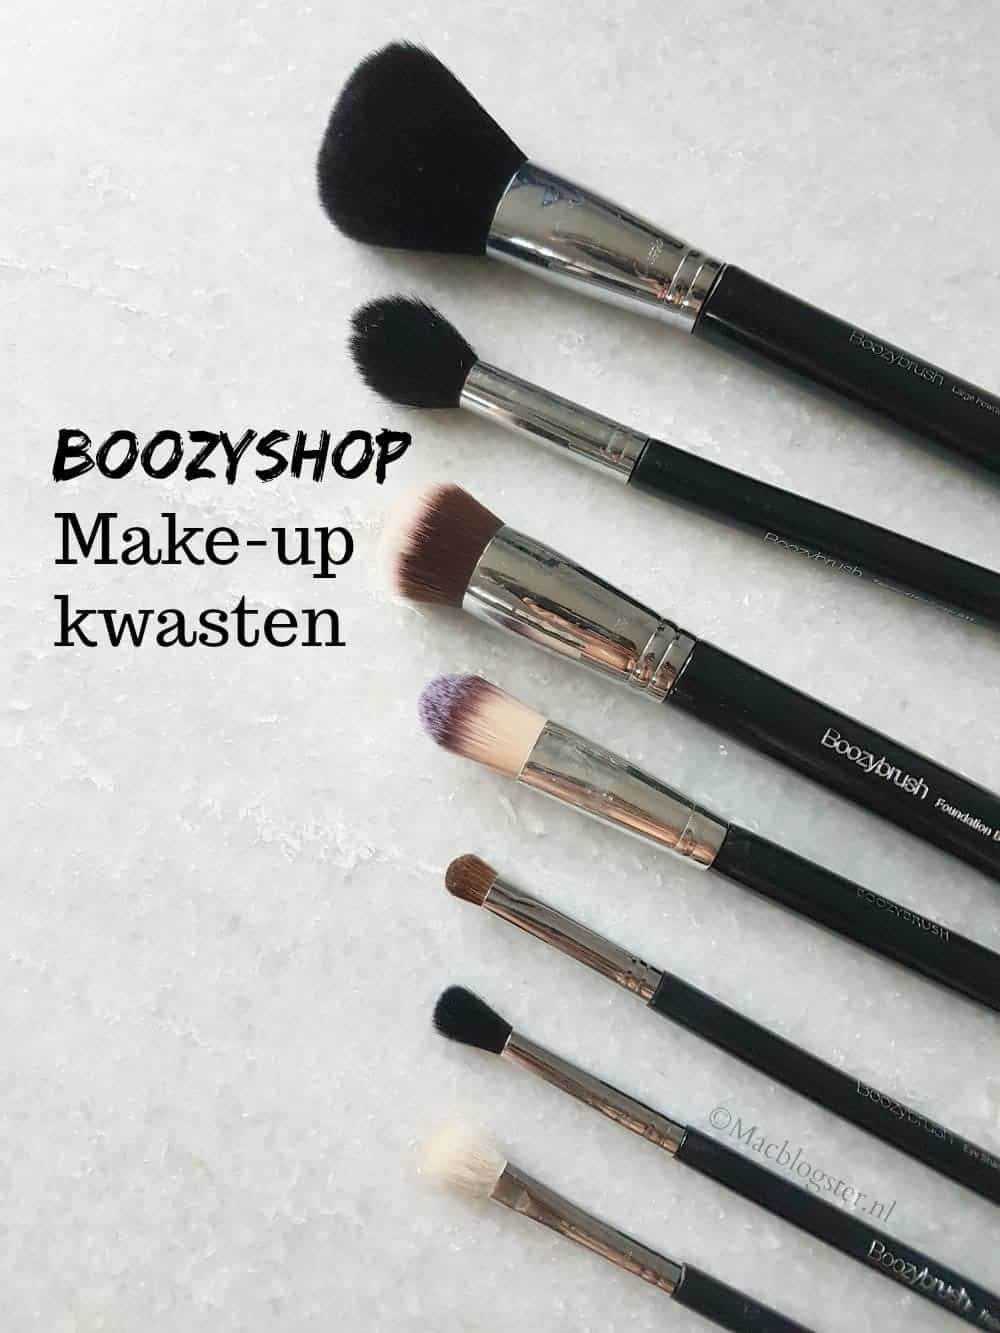 Budget Beauty Tip: BoozyShop Make-up Kwasten